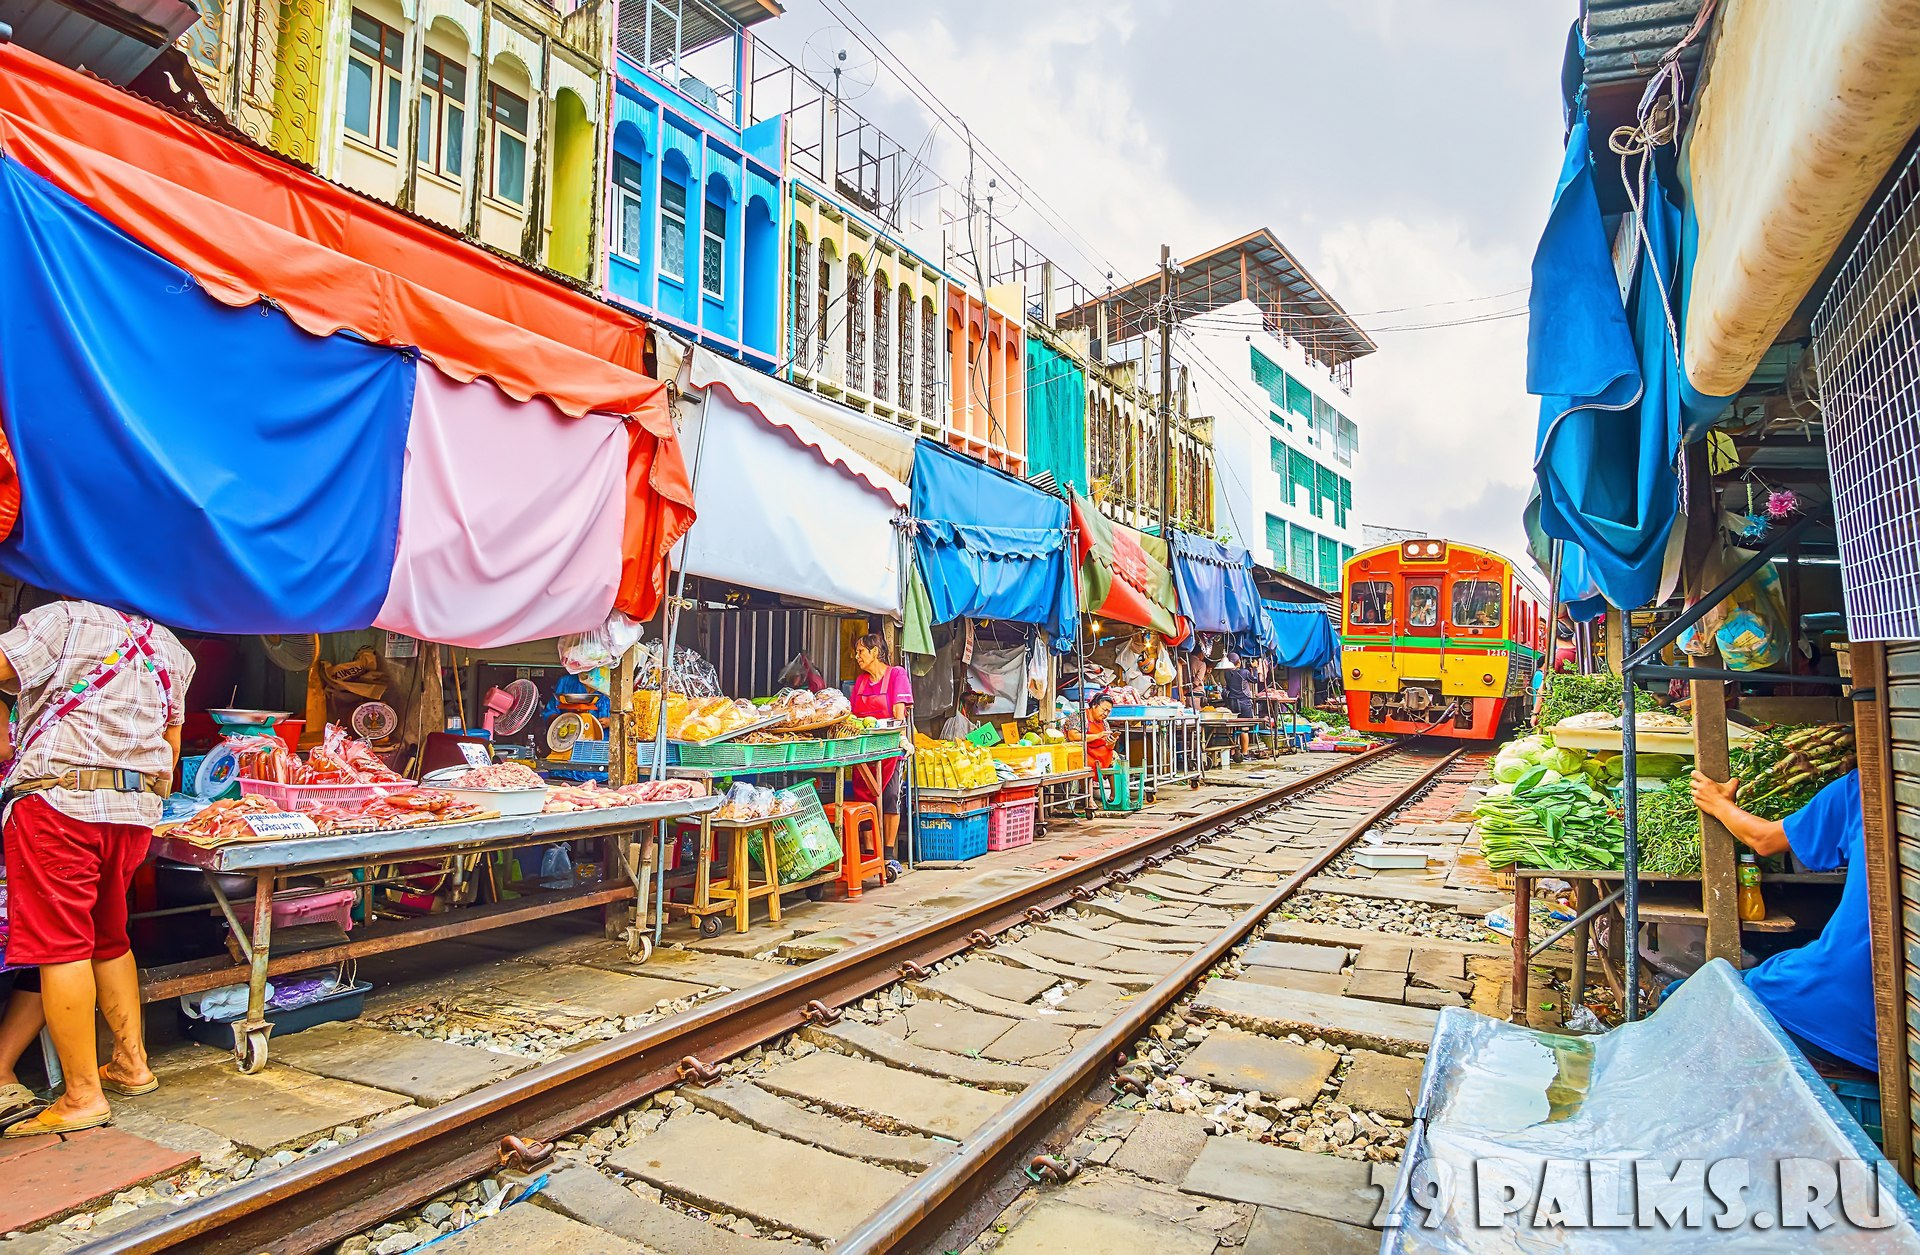 Таиланд. Бангкок. Ж.д. рынок Меклонг. Maeklong Railway Market, lined with fresh vegetables and fruits stalls, tiny cafes and shops in Maeklong. Фото efesenko - Deposit